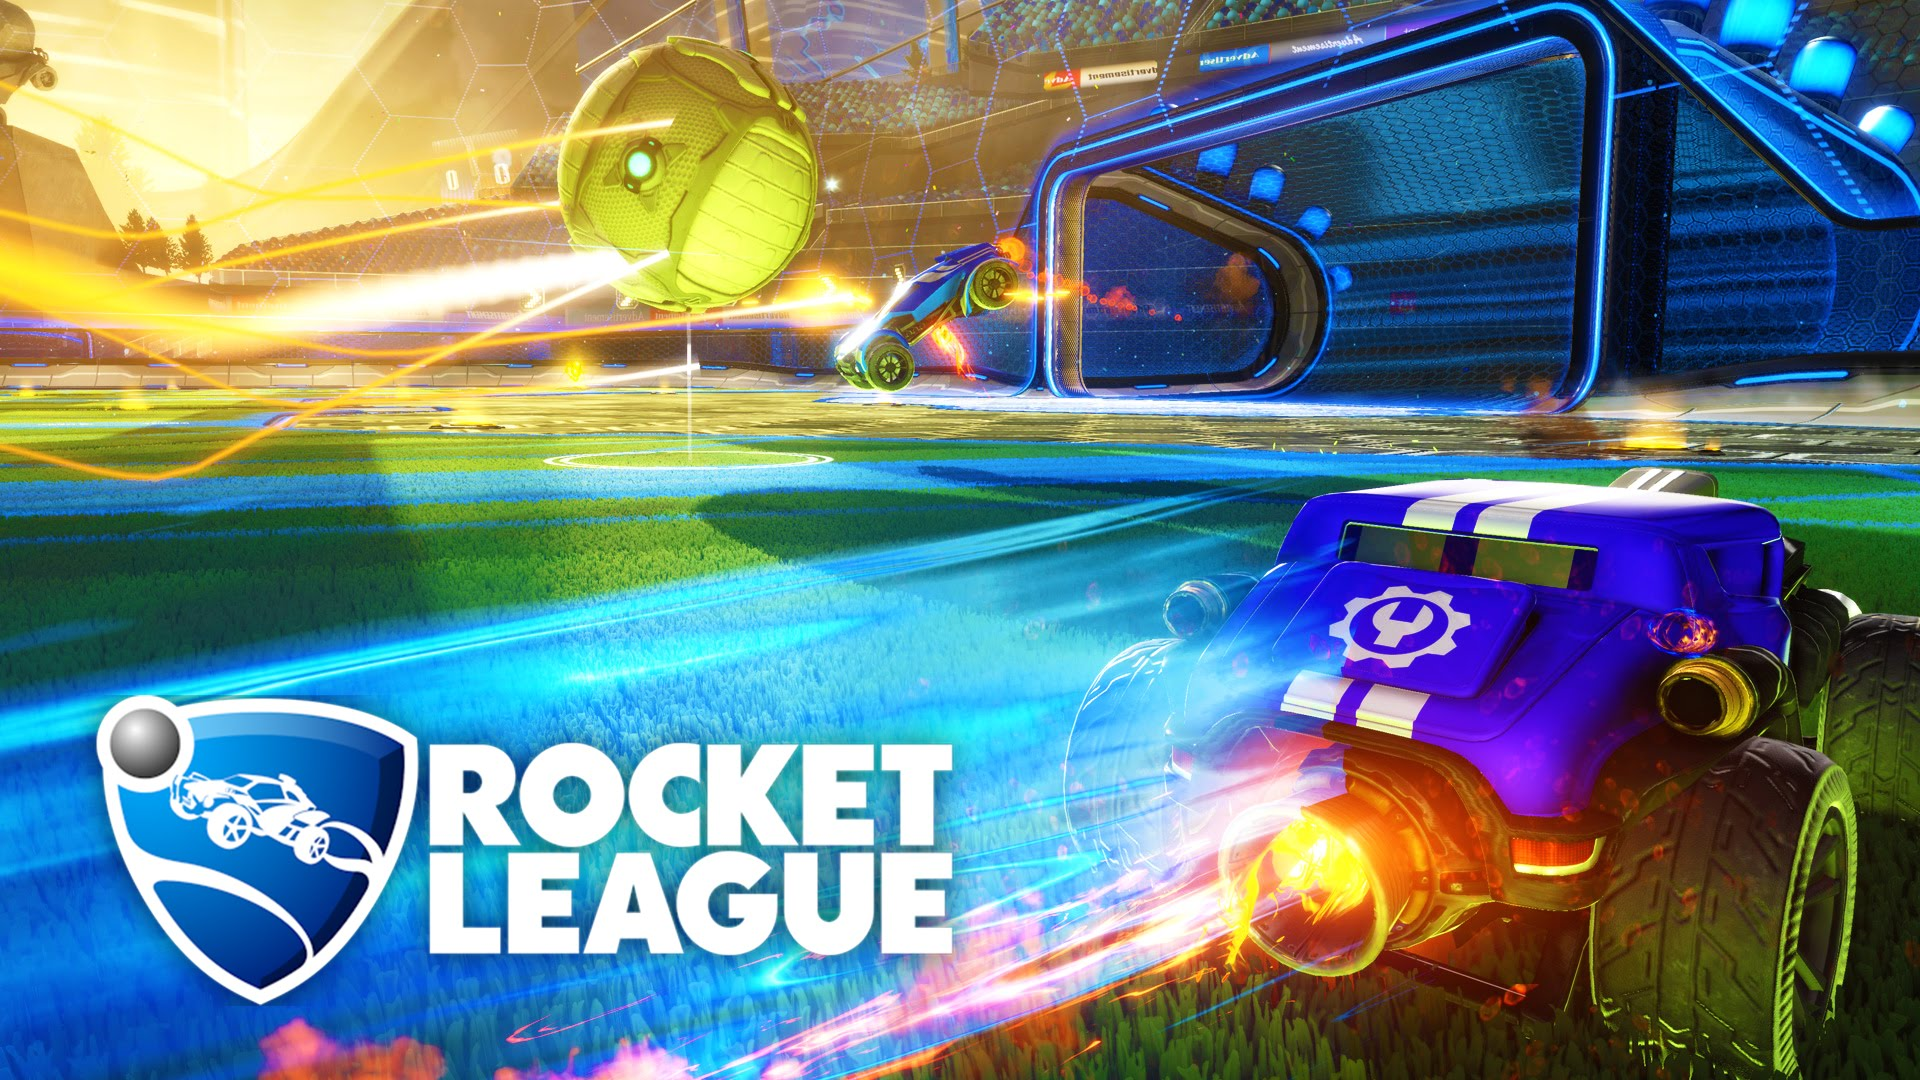 rocket league wallpaper hd 61734